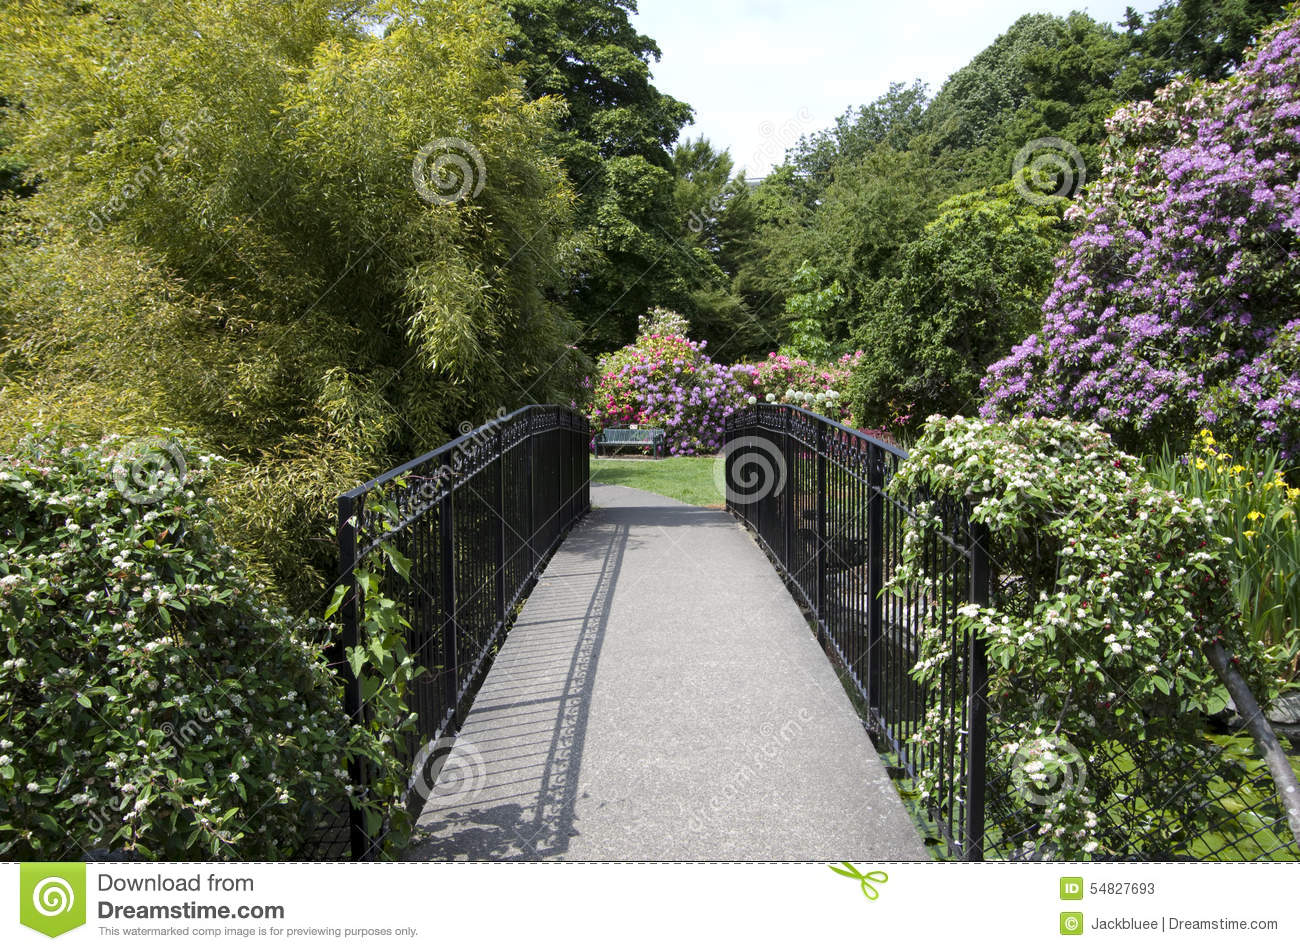 pont en chemin de jardin image stock image du conception 54827693. Black Bedroom Furniture Sets. Home Design Ideas